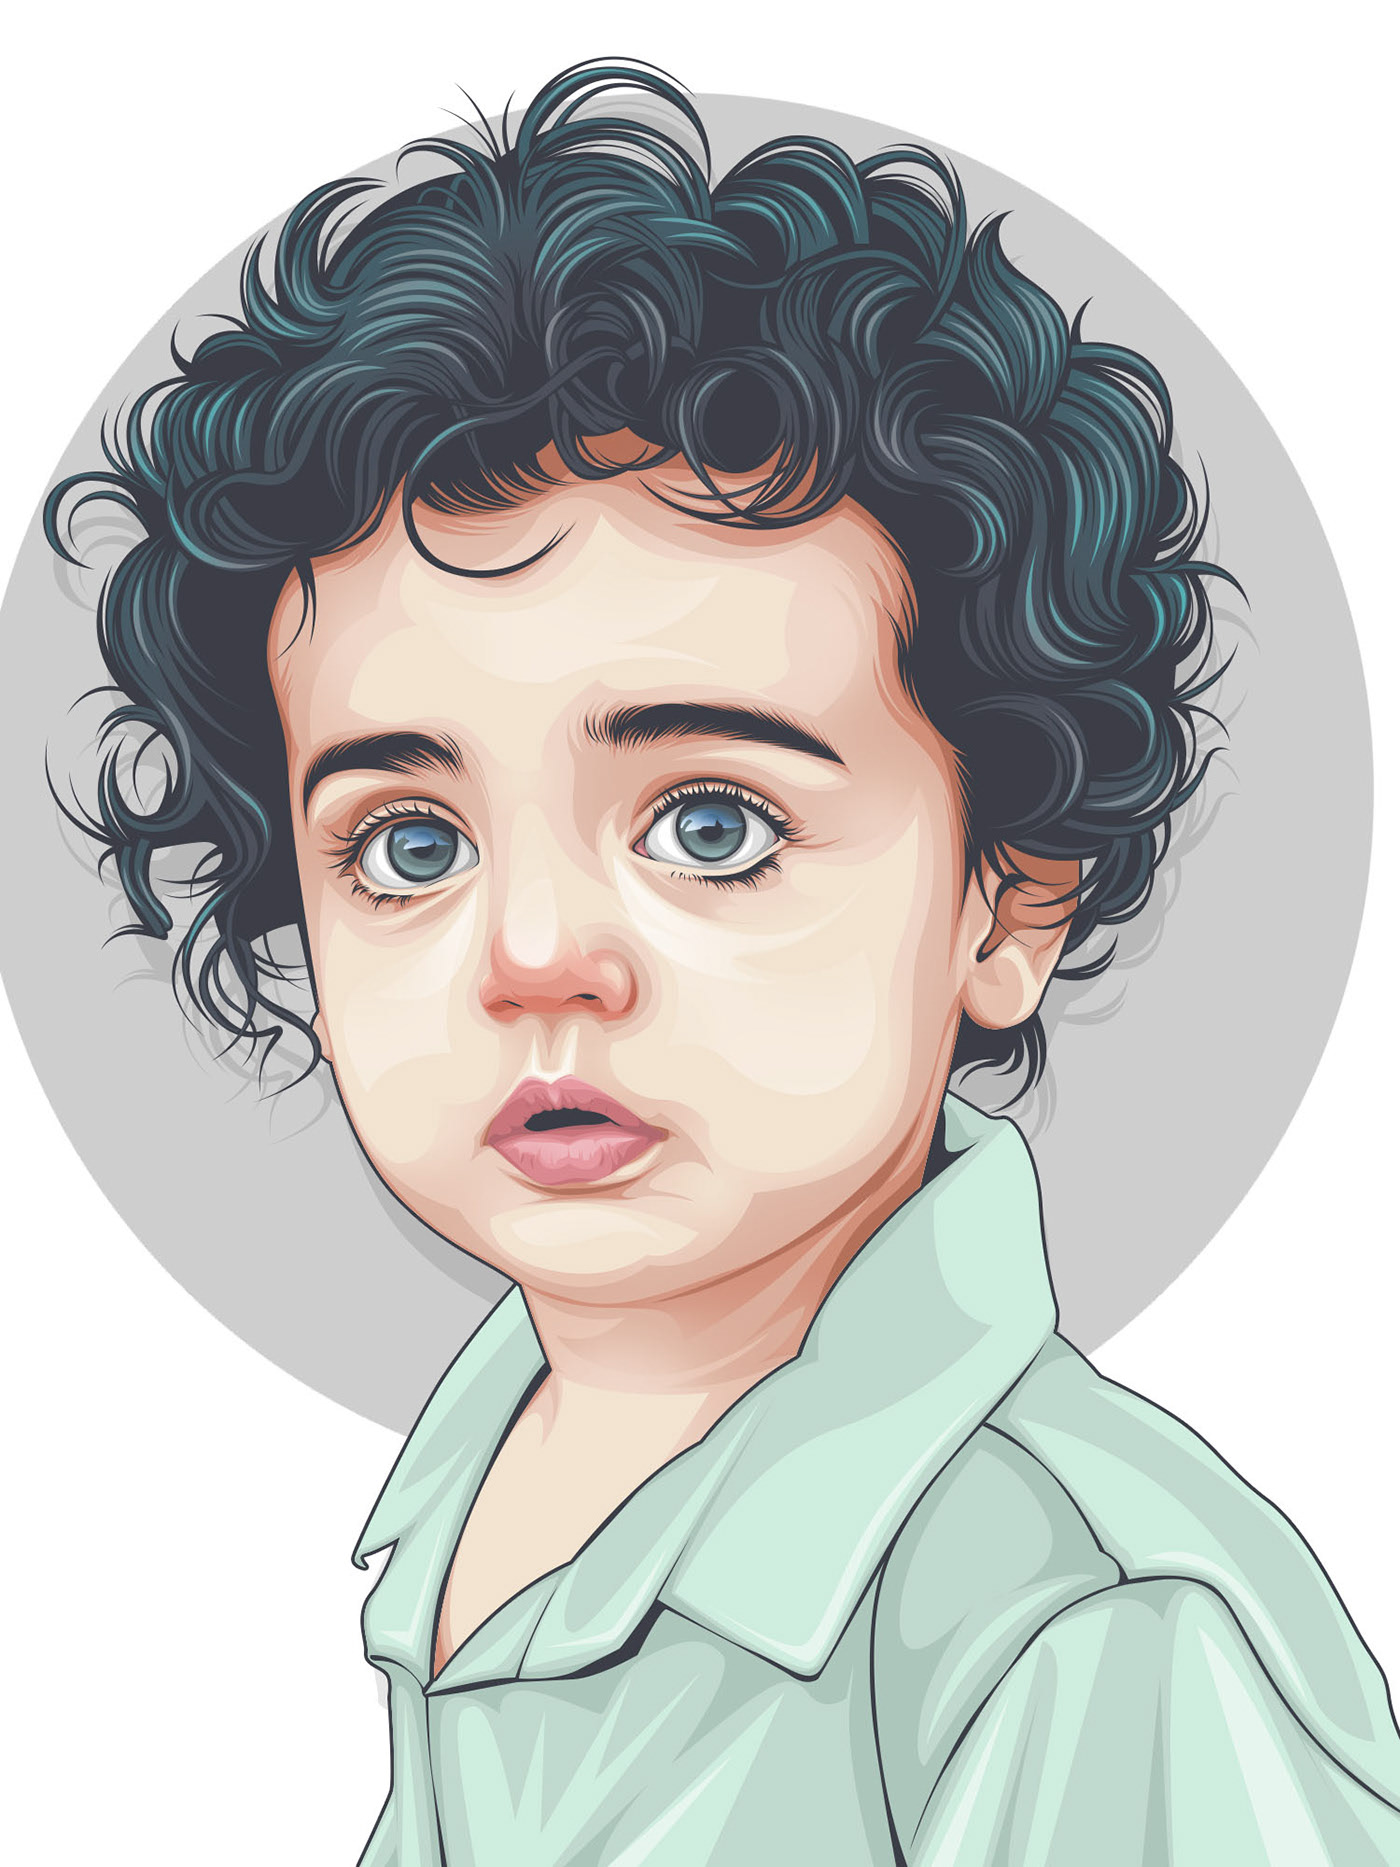 vexel art portrait vector illustration toddler by rizky fadillah